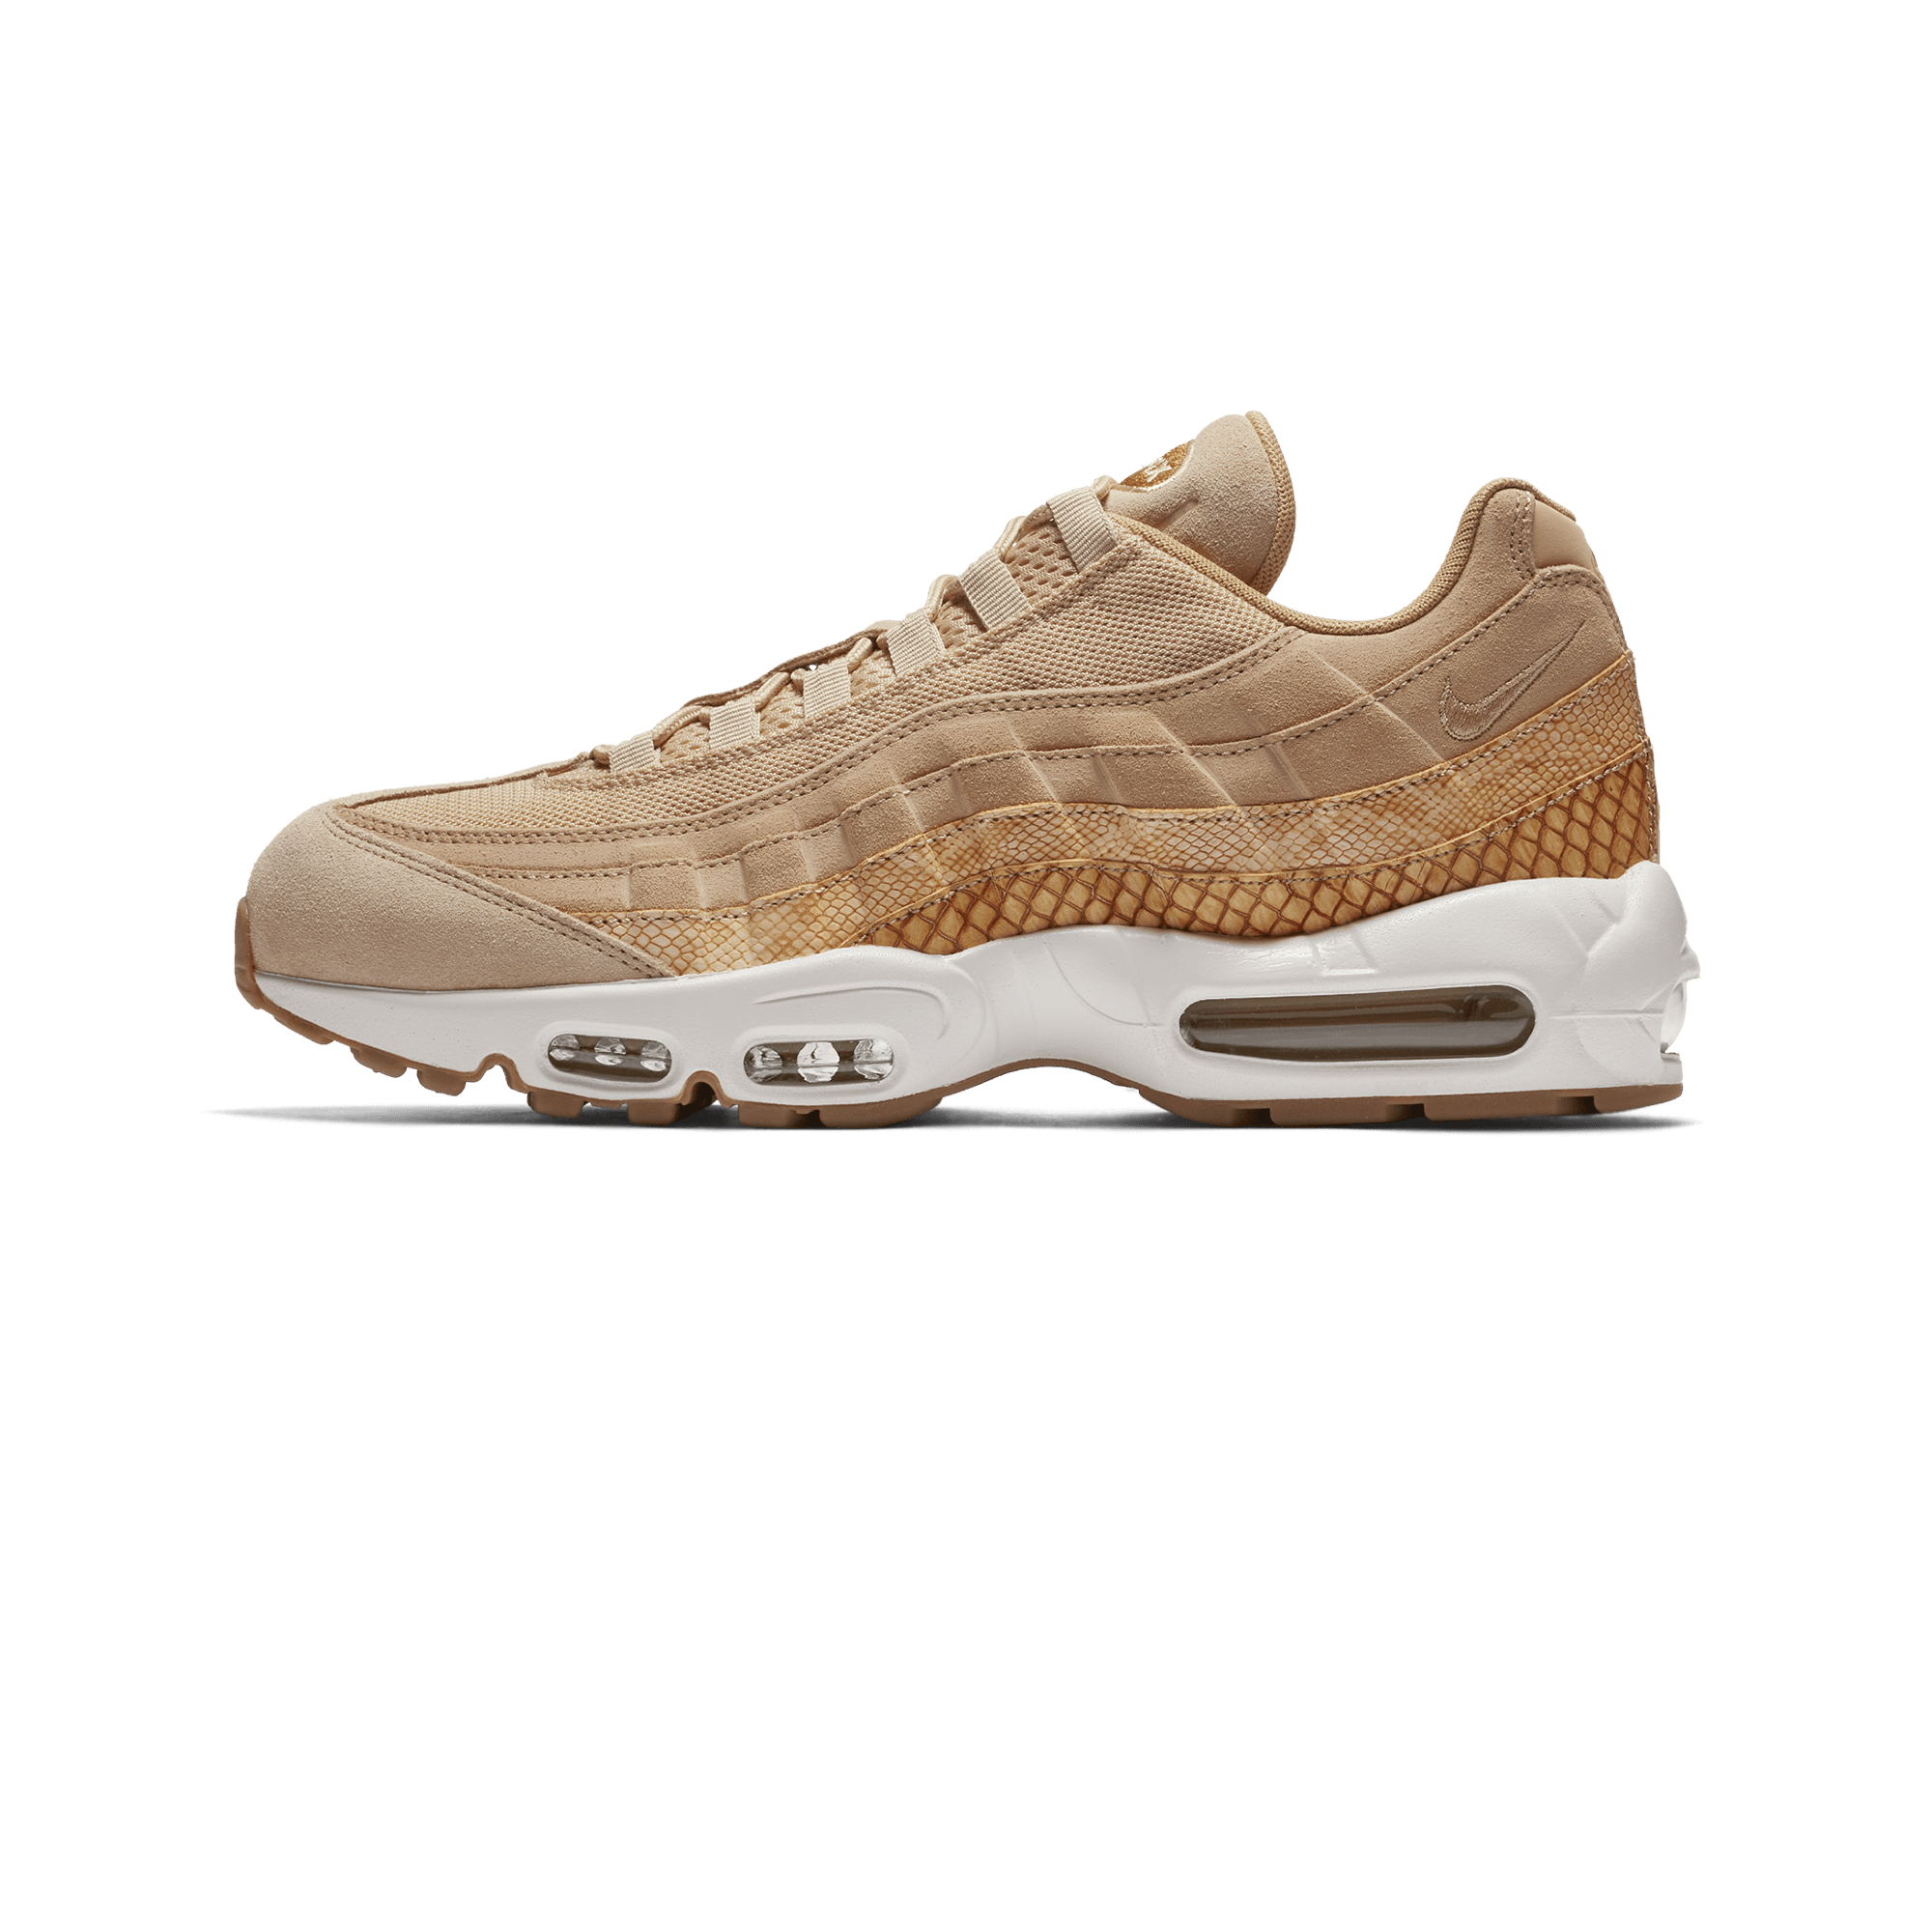 Air Max 95 PRM vacchetta tan